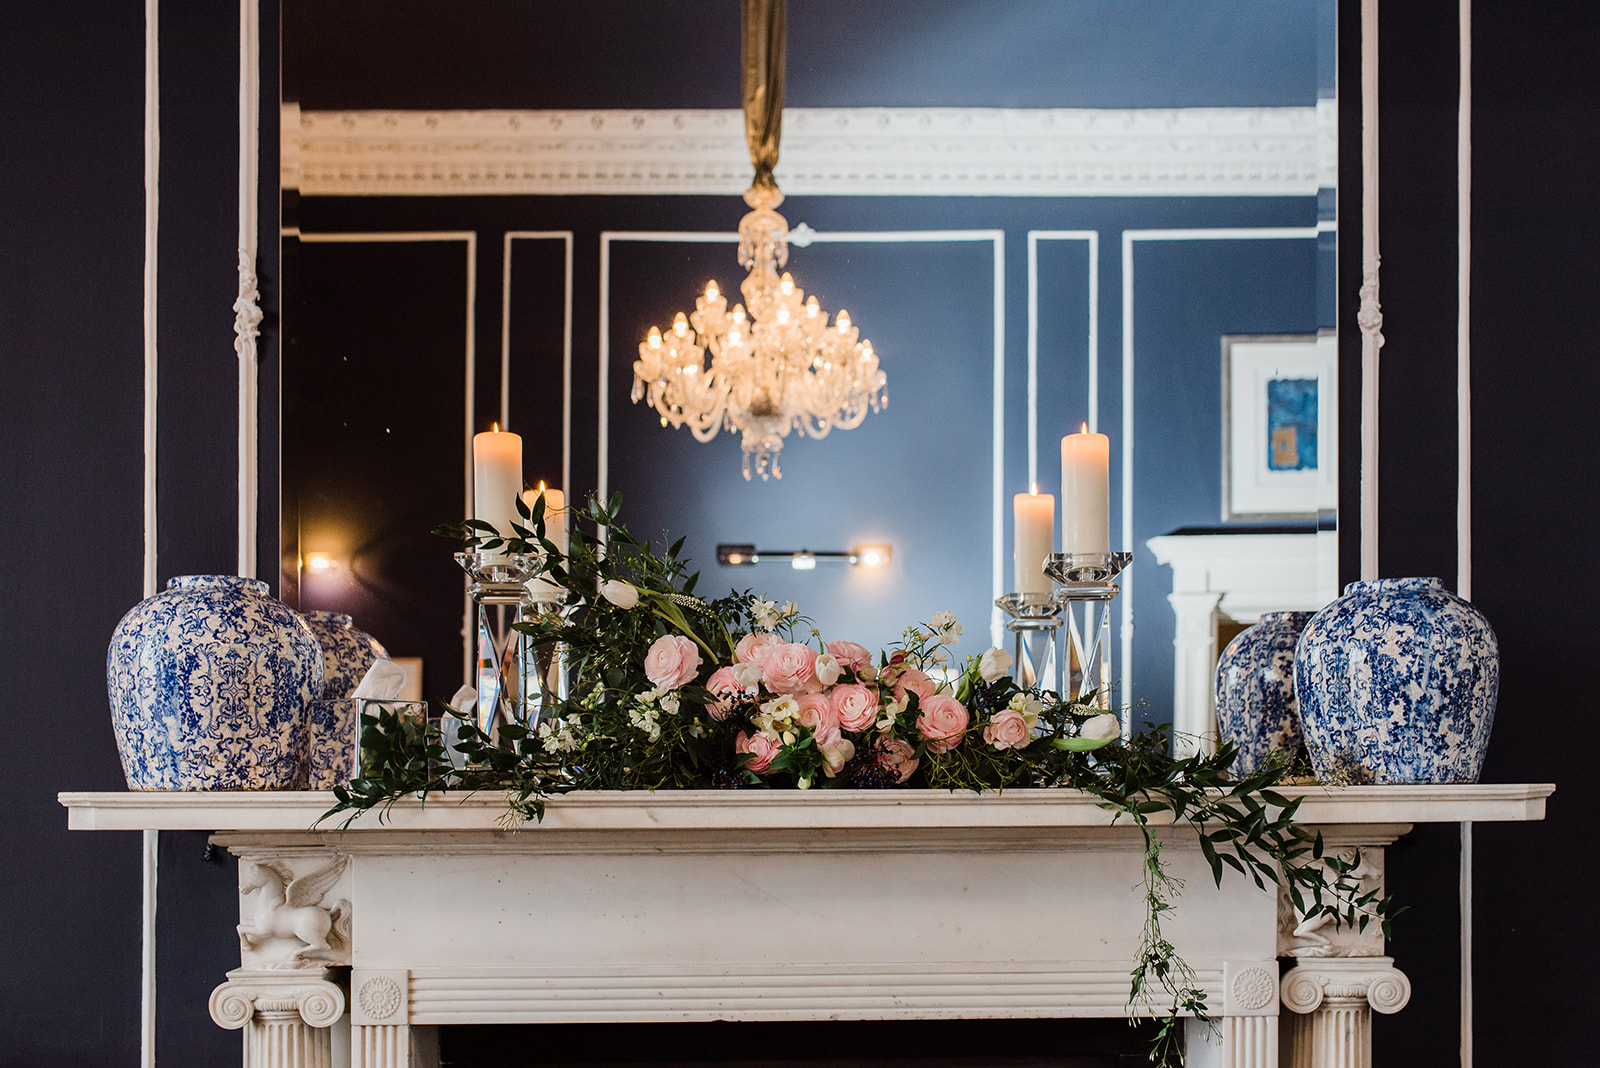 Floral centrepiece on mantlepiece